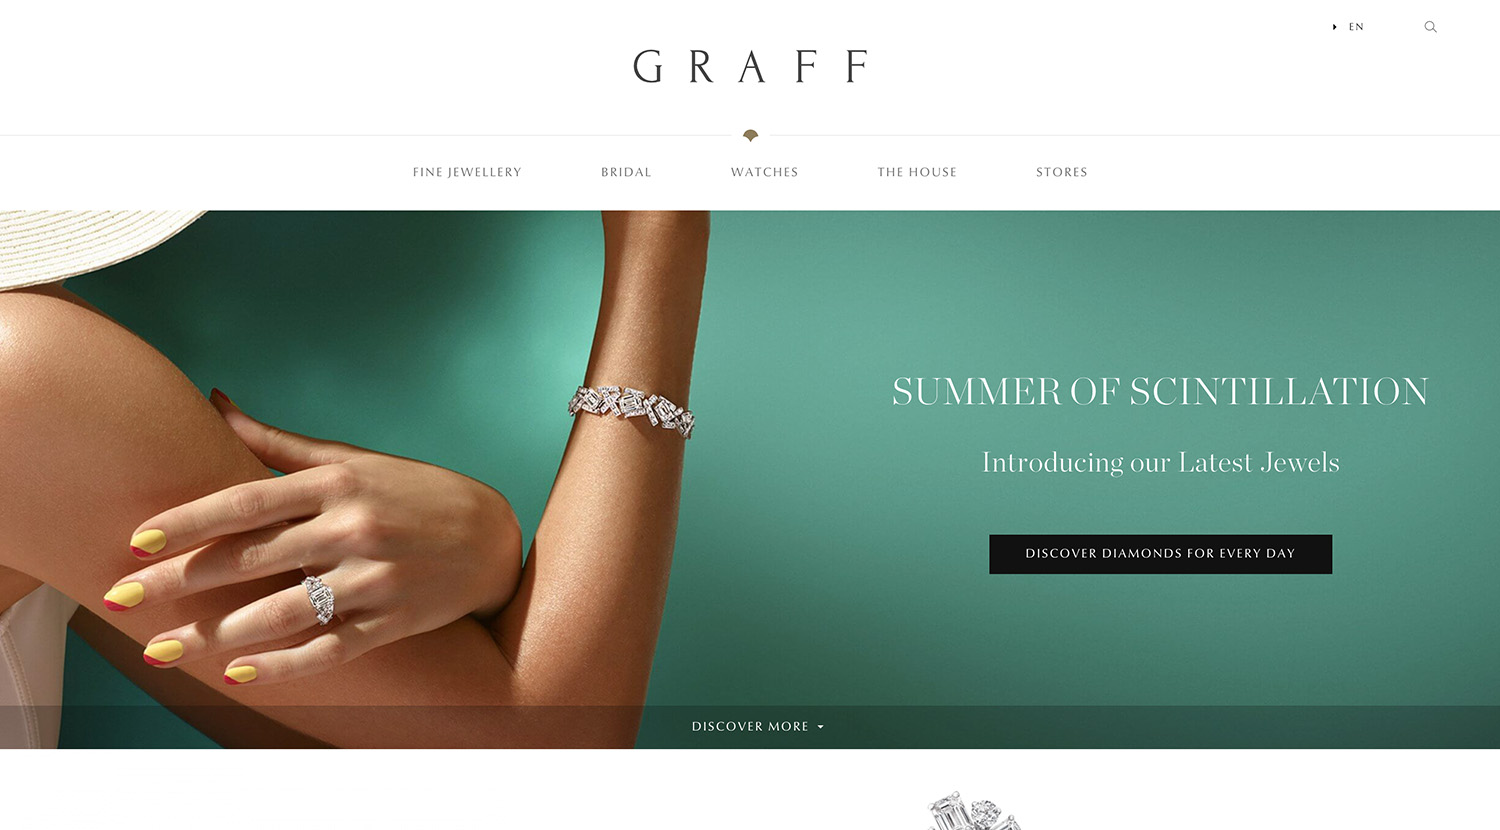 graff jewellery website design.jpg